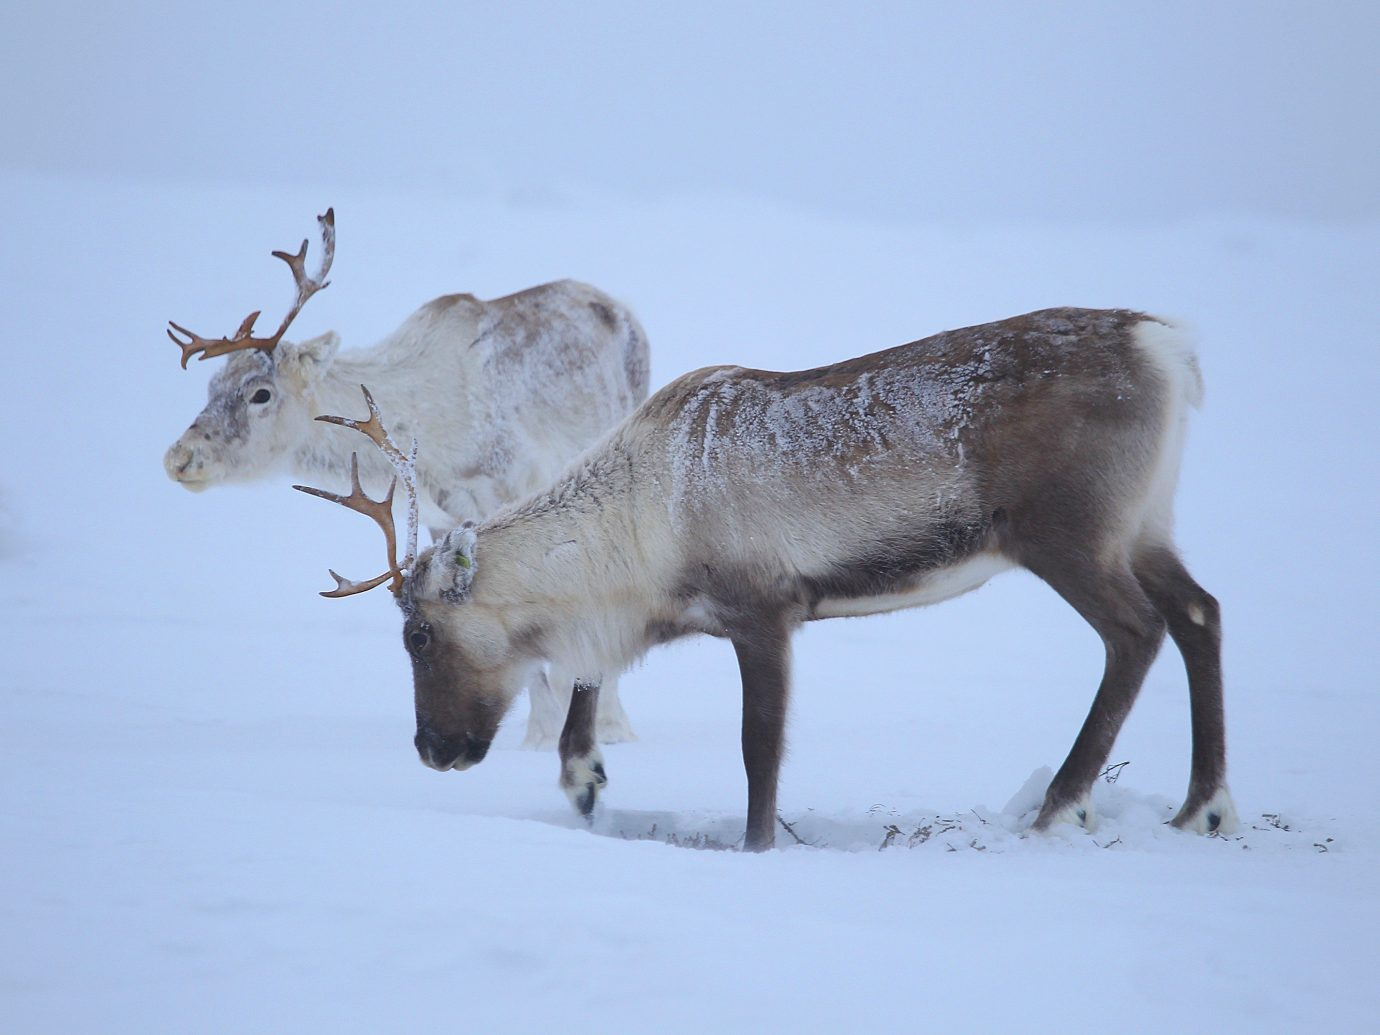 Trip Ideas snow animal outdoor mammal vertebrate deer fauna Wildlife reindeer standing Winter white tailed deer elk day